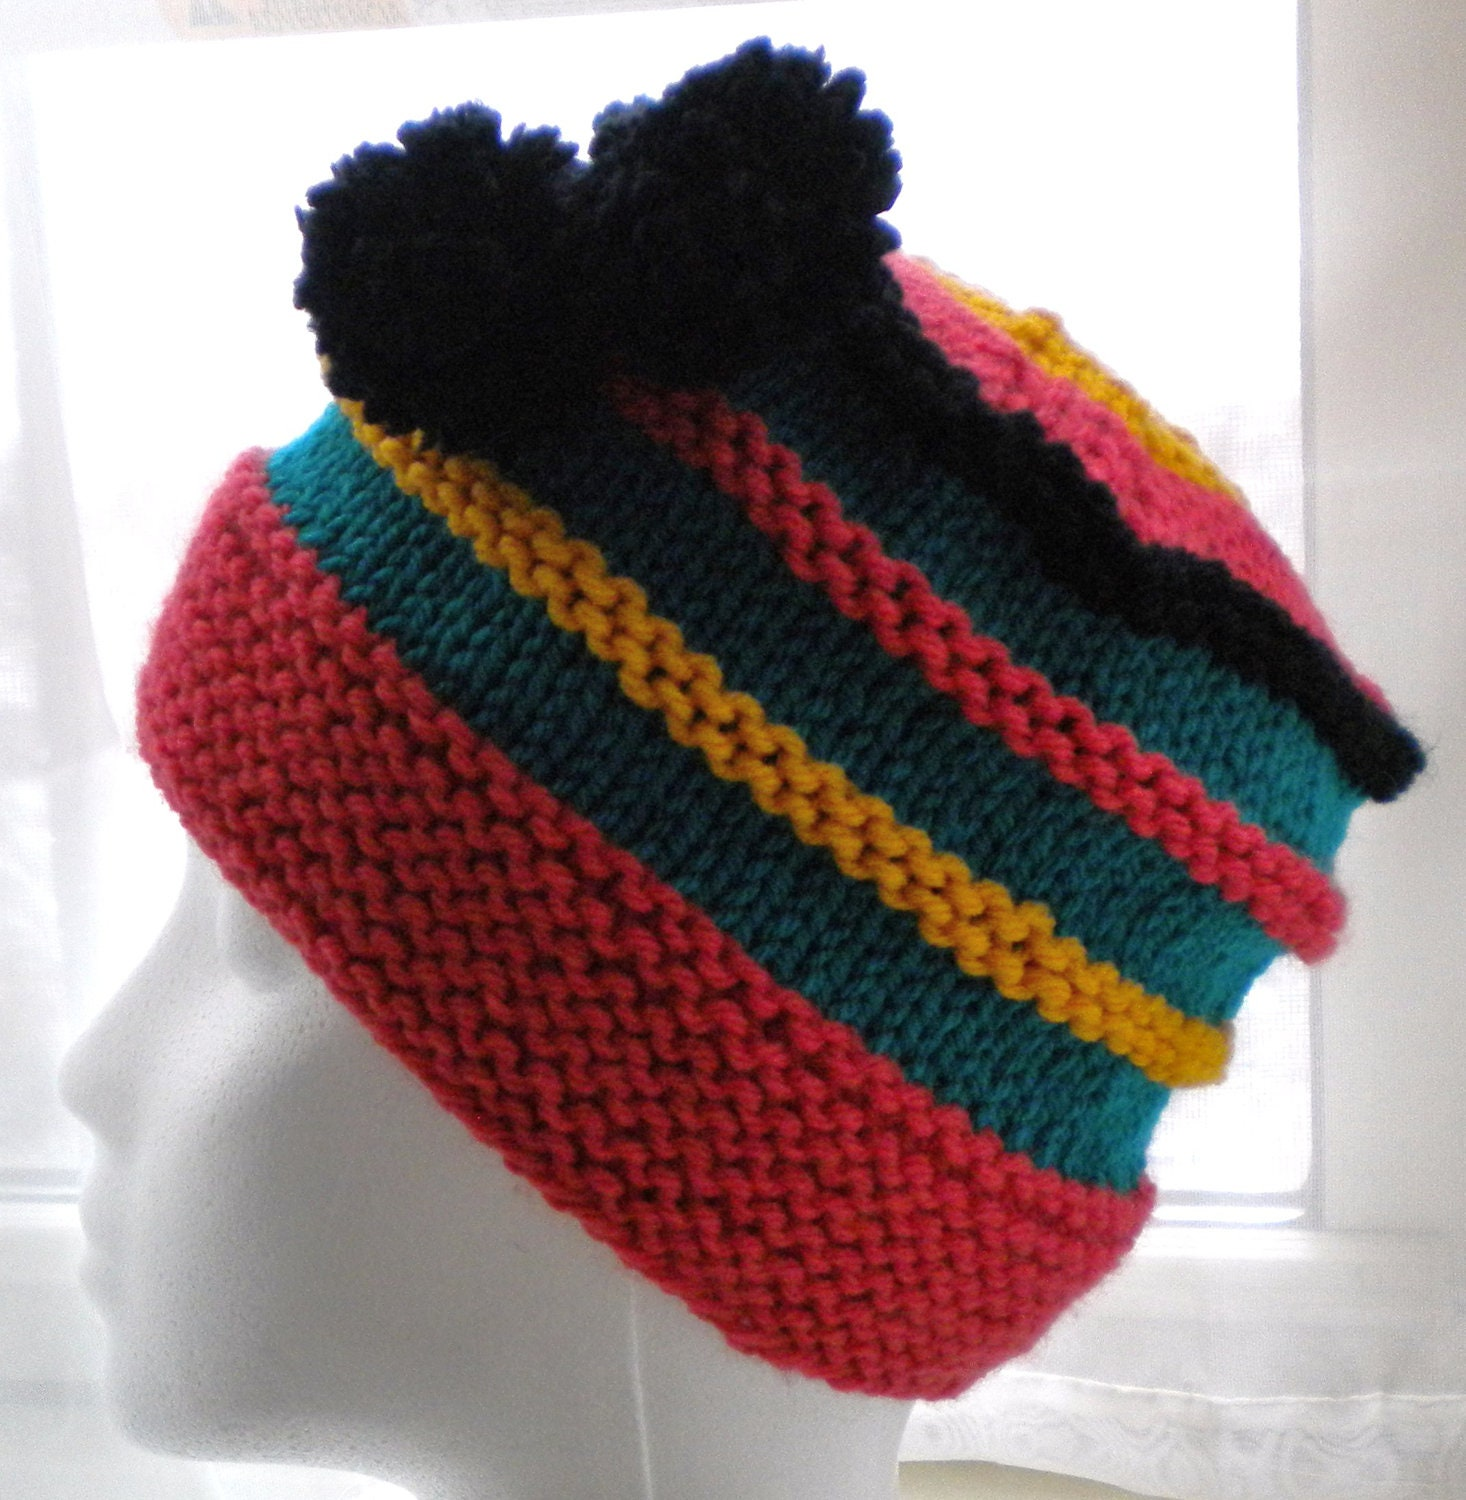 Knit Pom Pom Hat Pattern : Knit HAT PATTERN with pom poms Scrap Yarn